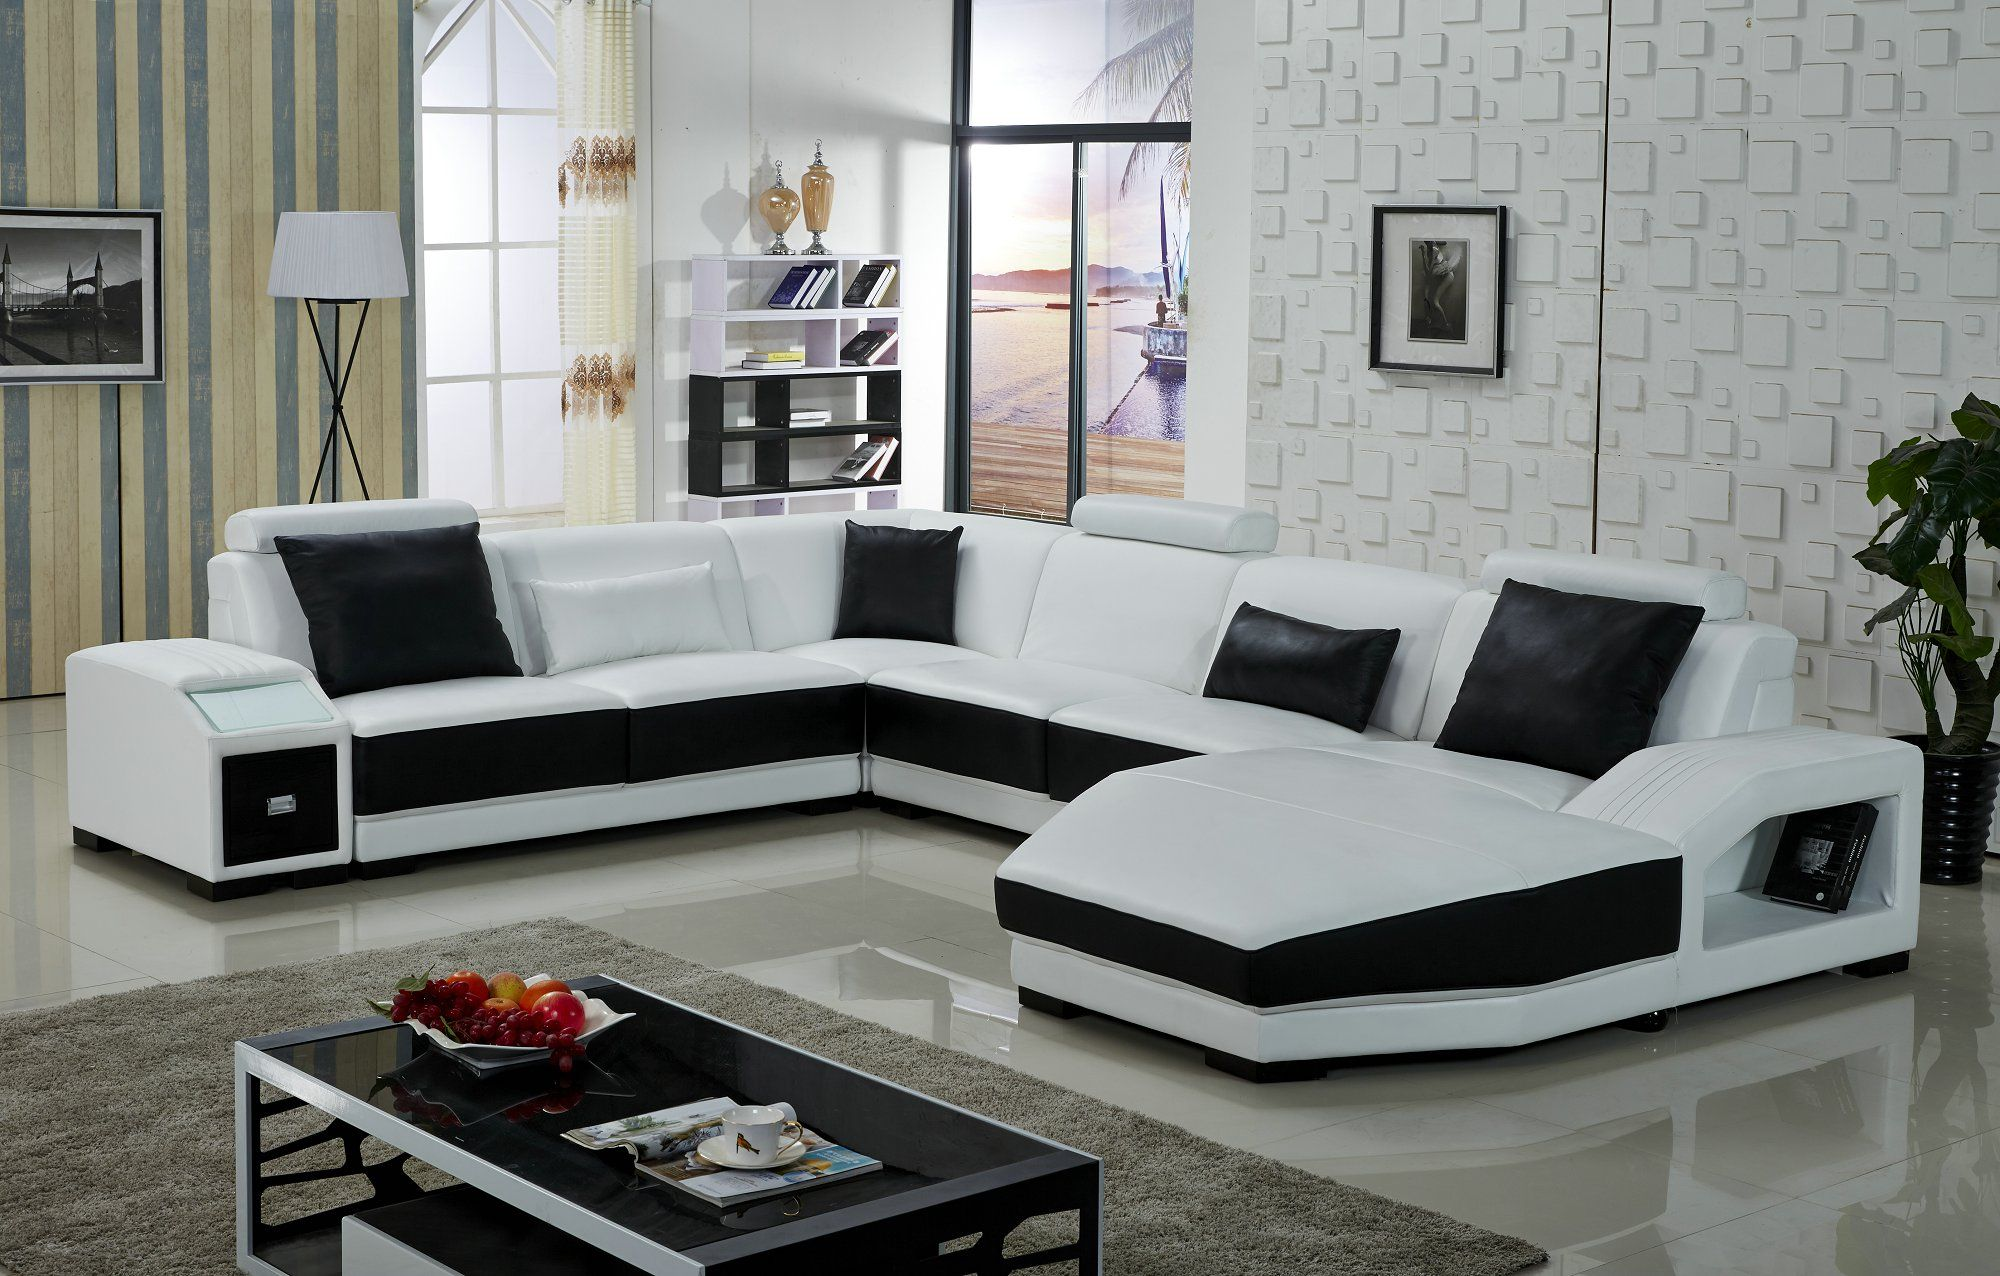 Contemporary Sofa Sets L BZ1204 1 China Lizz Furniture Co Ltd